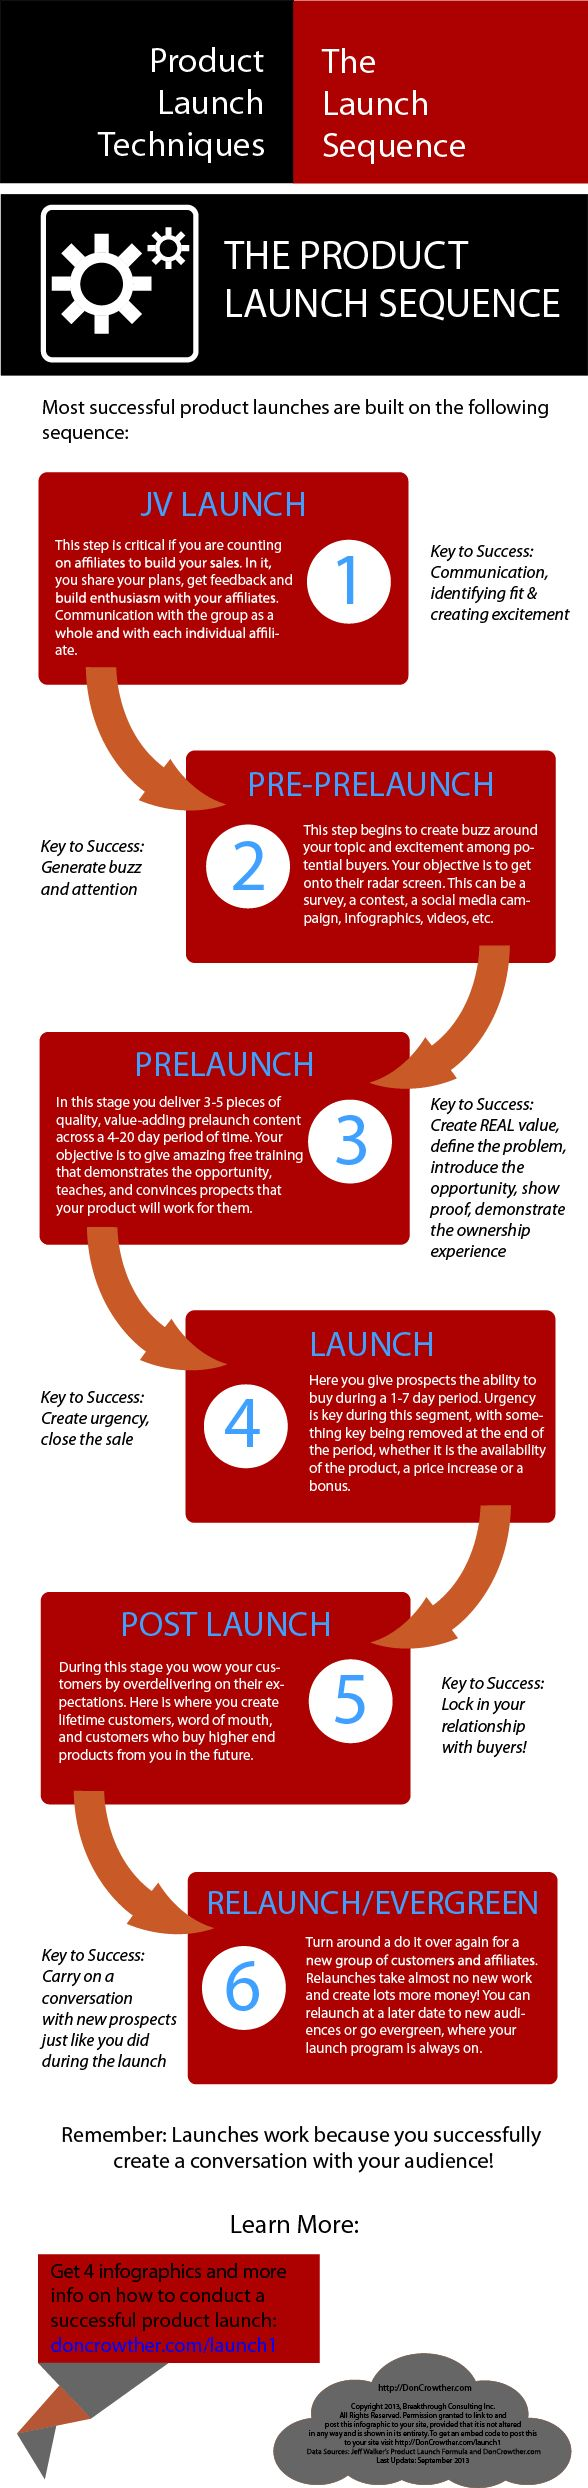 Infographic - The 6 essential elements of a successful product launch sequence http://doncrowther.com/featured/the-product-launch-sequence